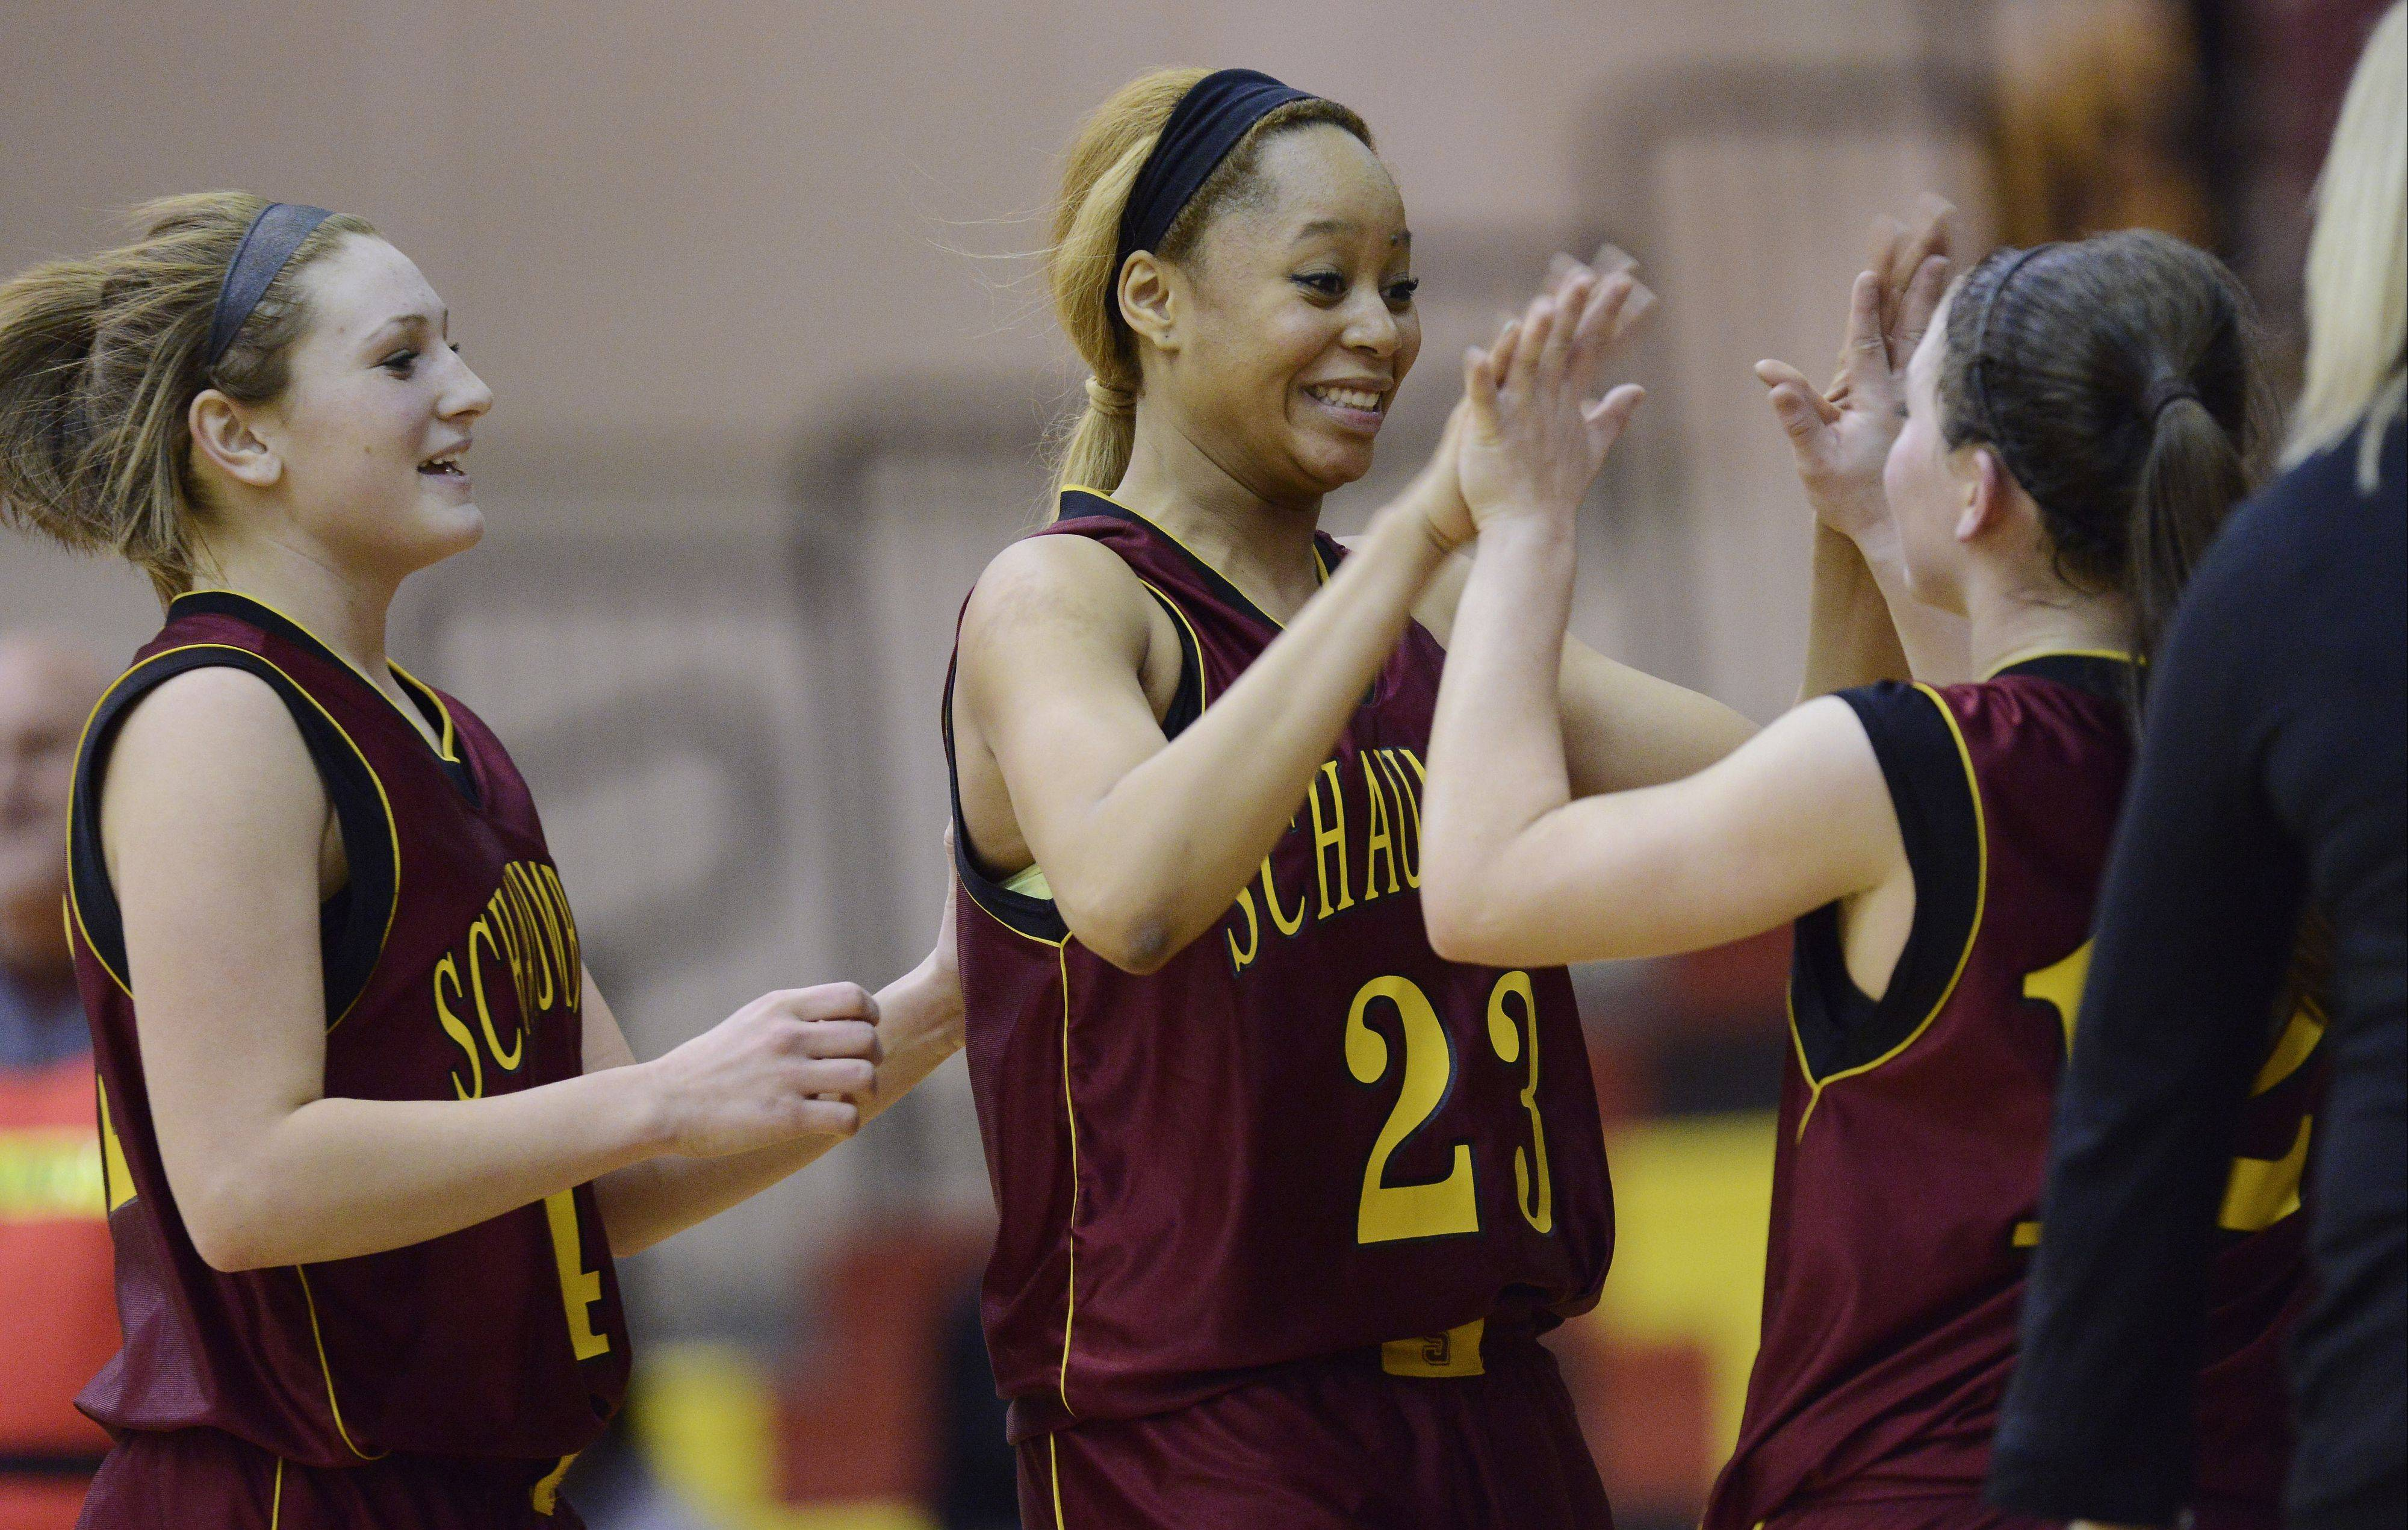 Schaumburg's Jada Blackwell, middle, and Brittany Reinhart, left, celebrate with Amanda Kelly following the Saxons' overtime victory in Class 4A regional semifinal play against Proviso West.